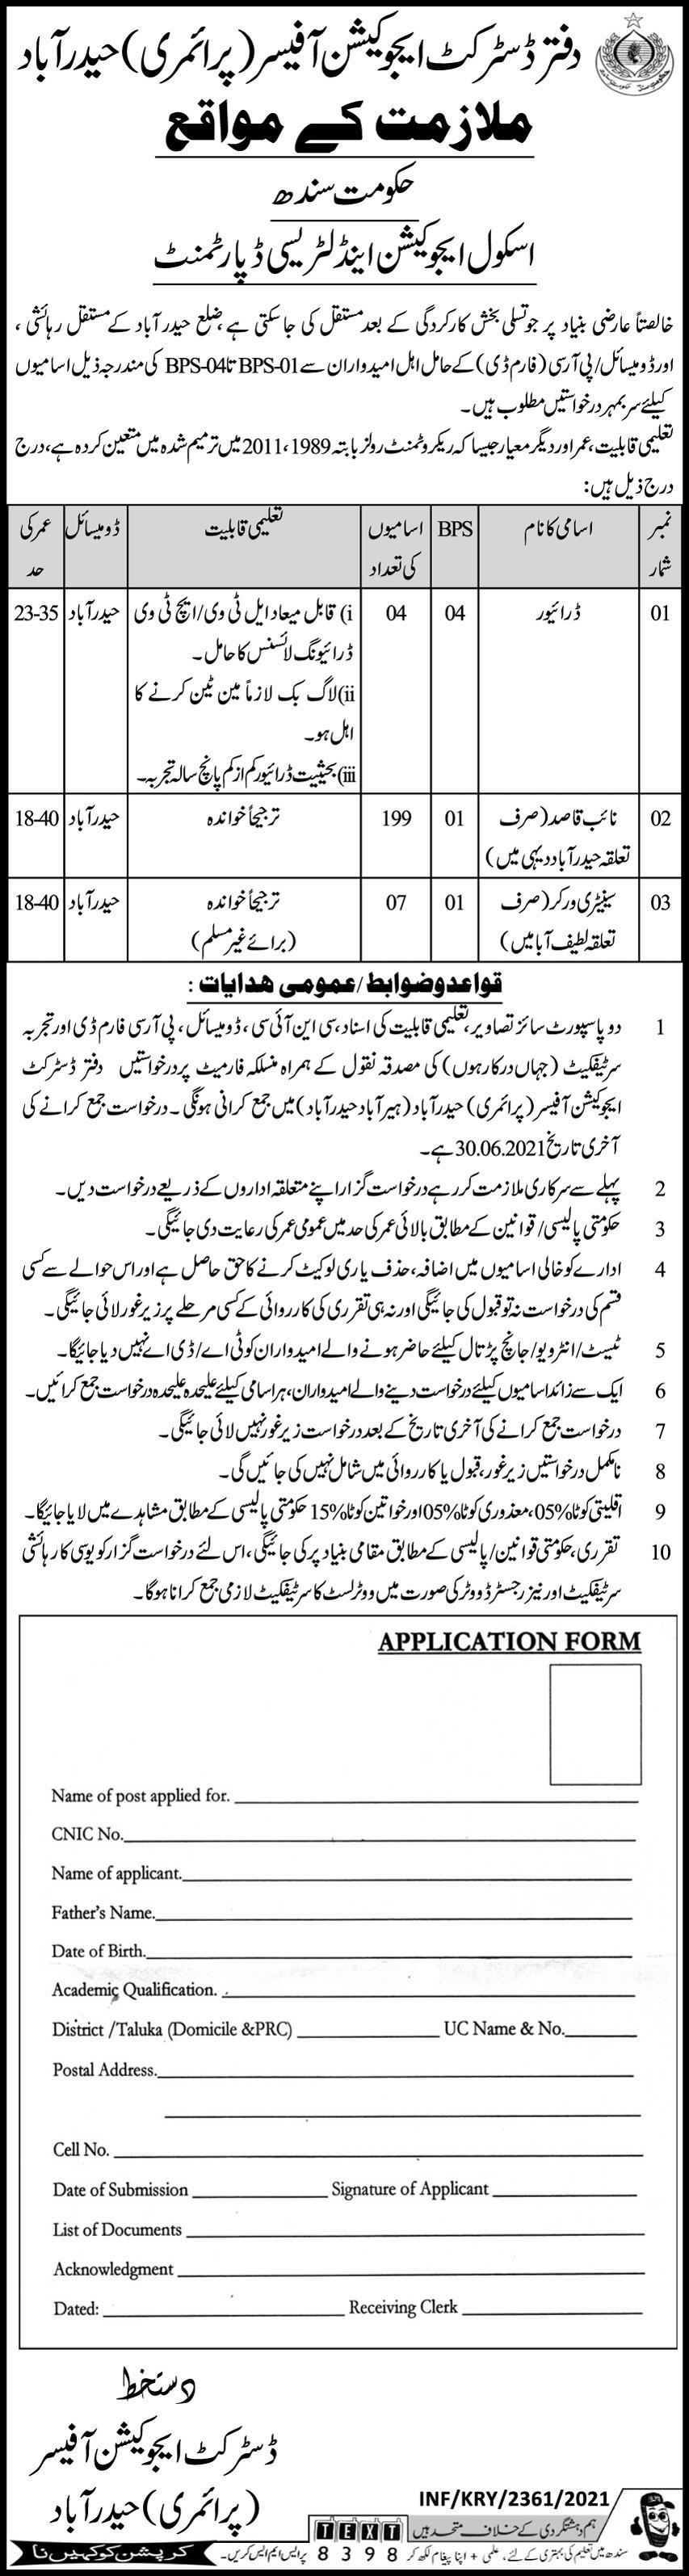 Government of Sindh School Education & Literacy Department Jobs 2021 Latest Advertisement - Sindh Education Department Jobs 2021